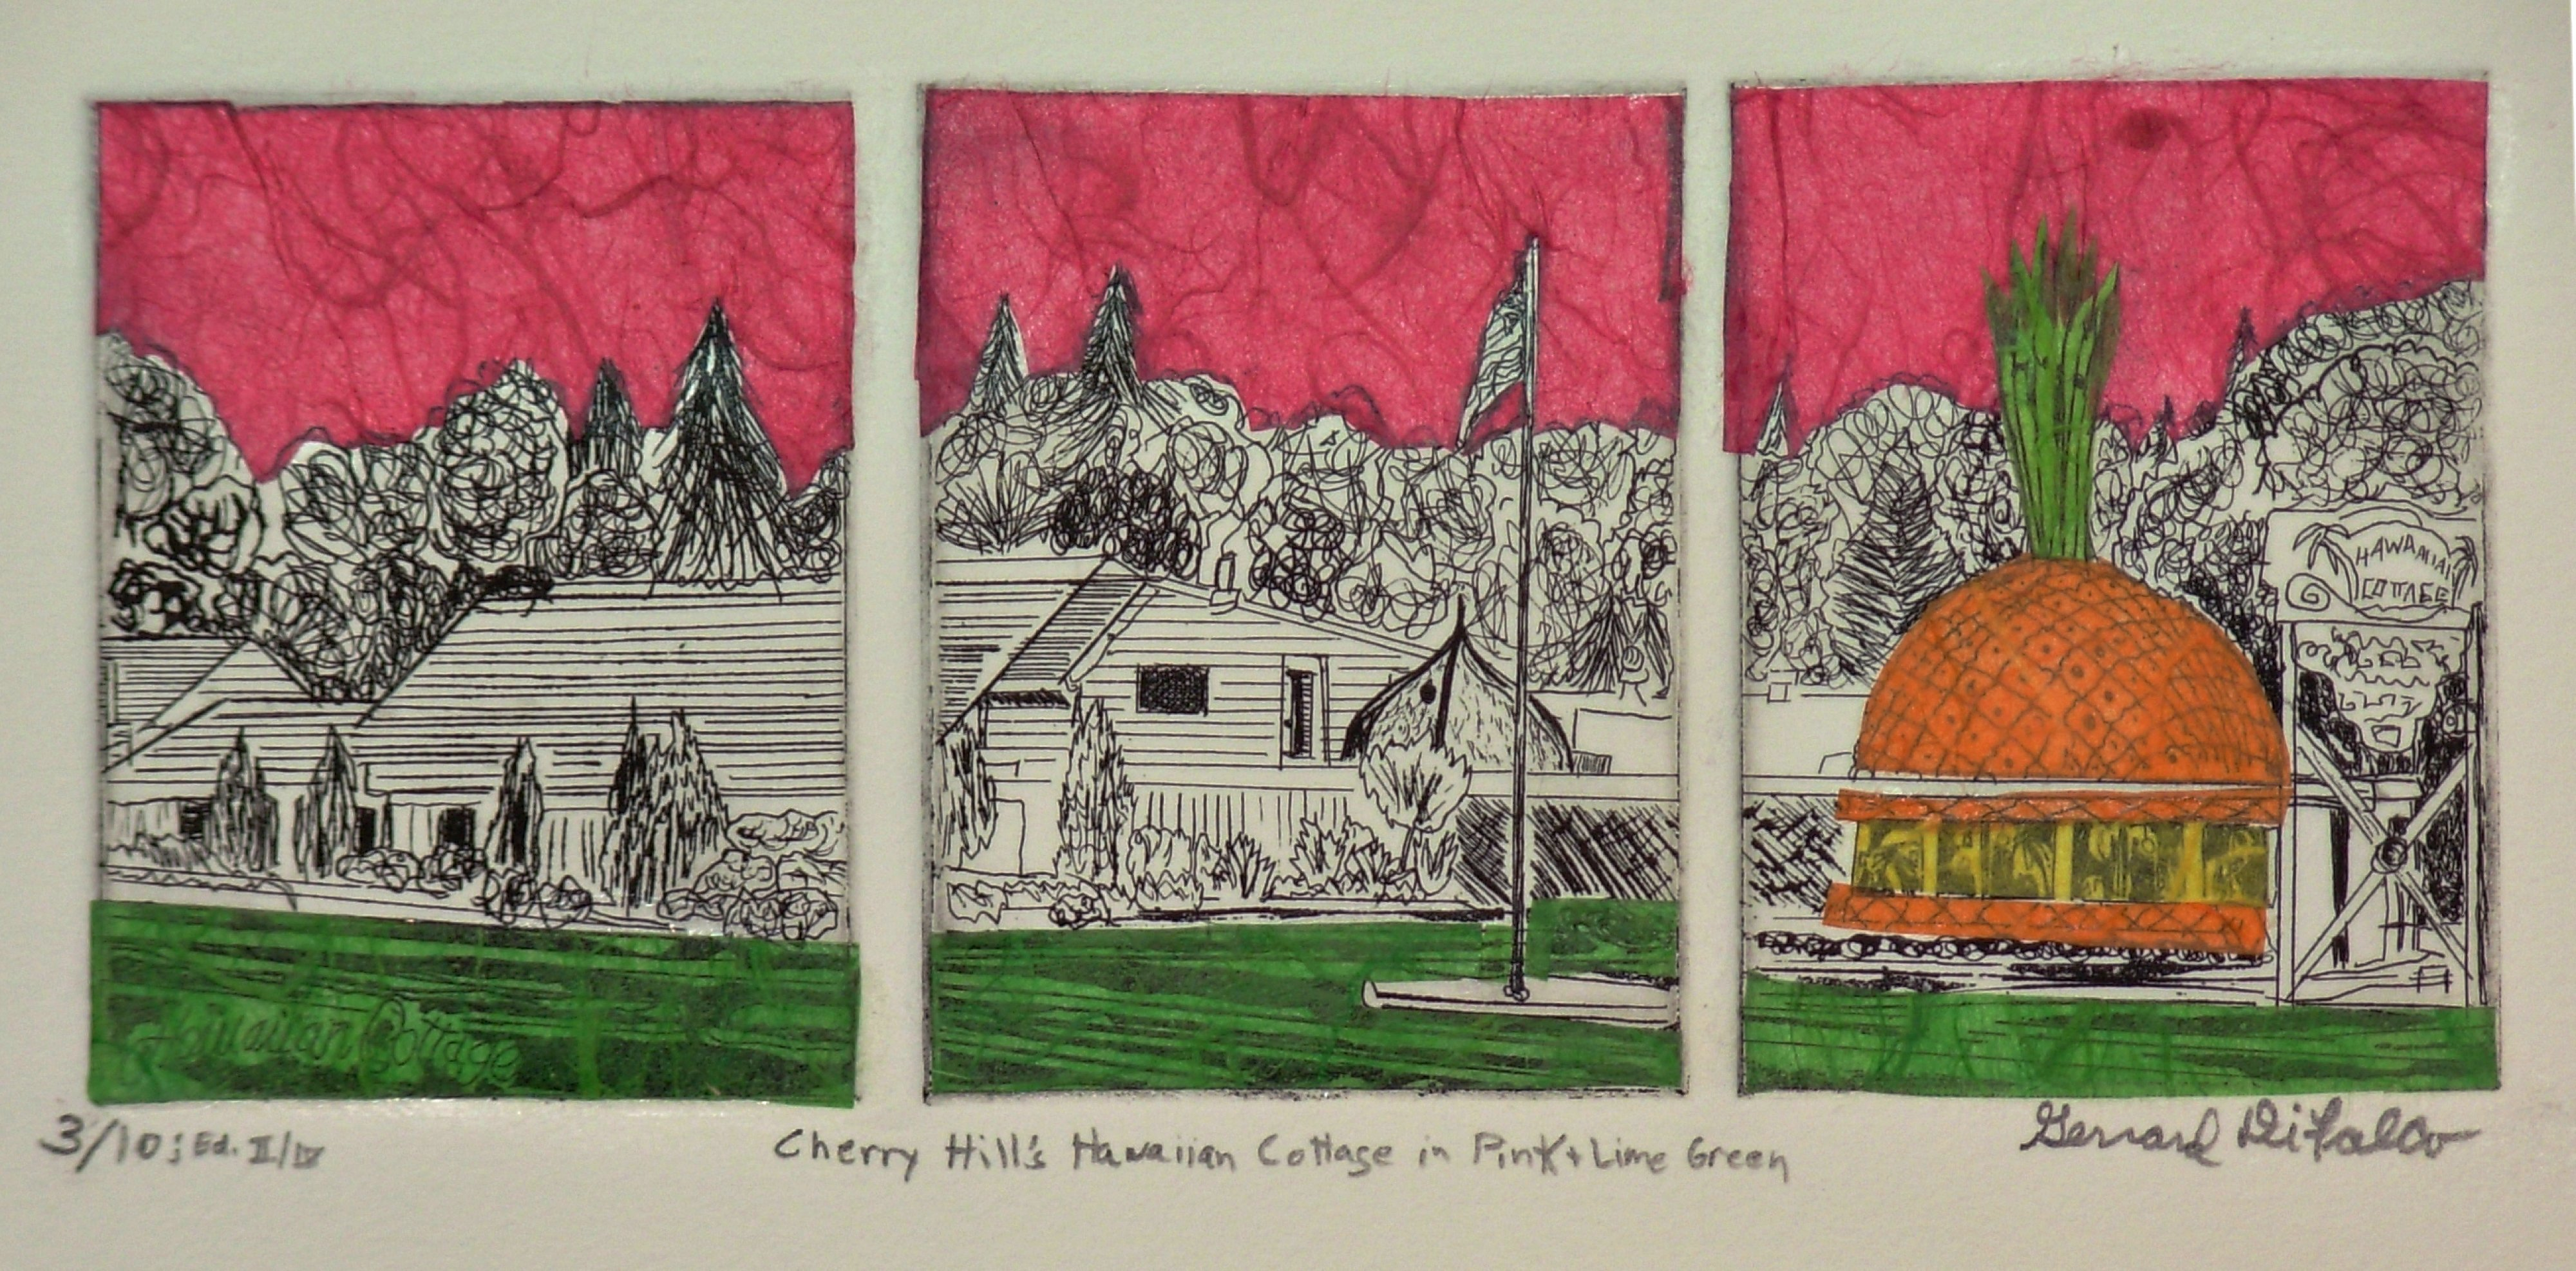 Jerry  Di Falco: 'HAWAIIAN COTTAGE IN PINK', 2014 Etching, Americana. This ETCHING includes the printmaking techniques of intaglio, drypoint, Chine colle, and aquatint. I executed the print in black oil- based printing ink on Rives BFK white paper. I used three separate zinc plates, lined horizontally on the press, to create one printed image. The work also uses three different ...